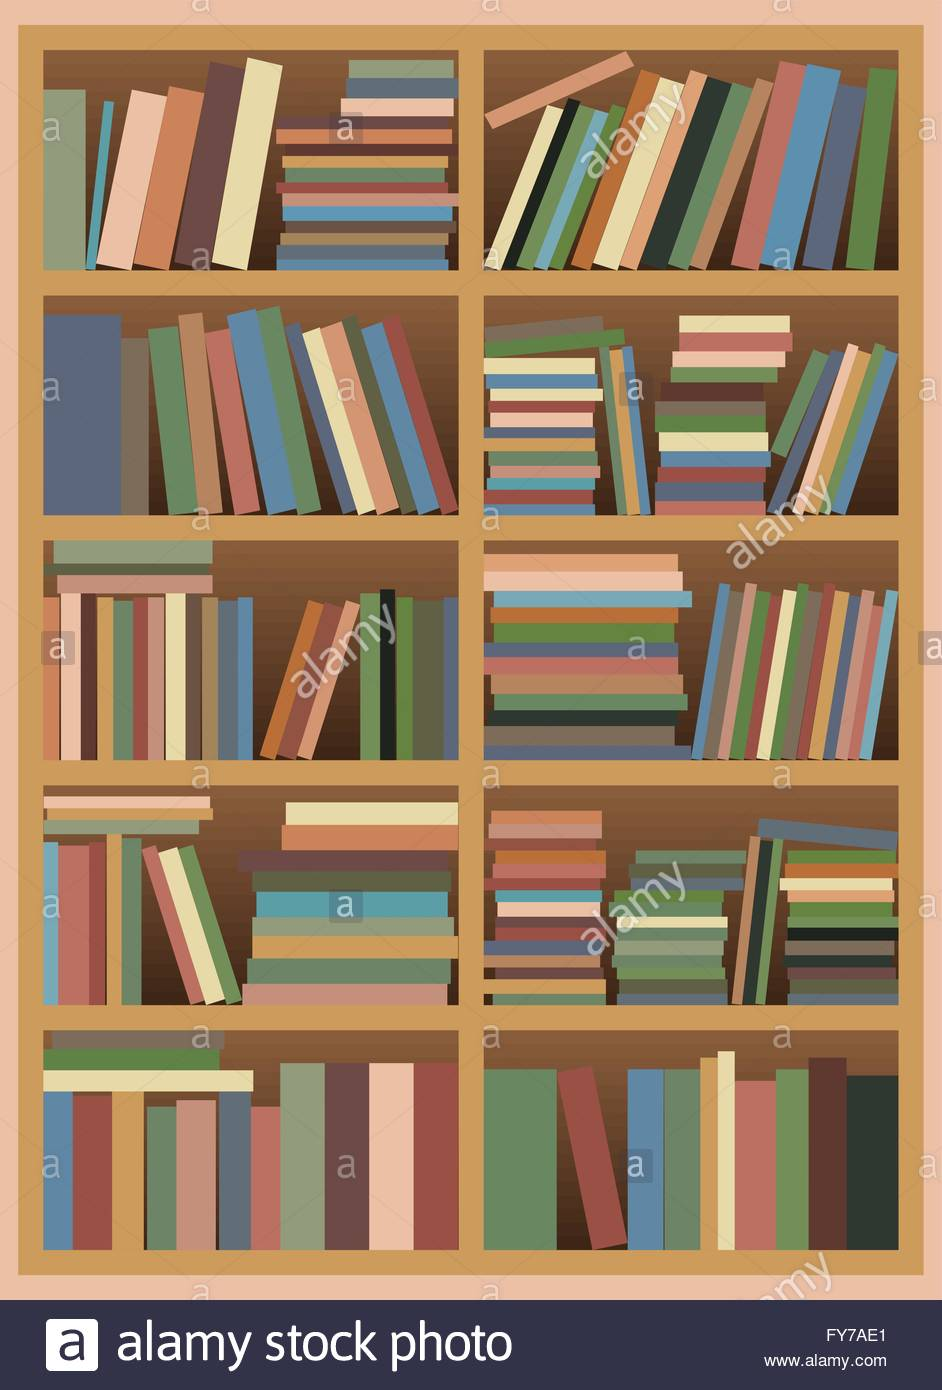 Vector illustration of a Untidy Bookshelf with Pastel Colored Books - Stock Image